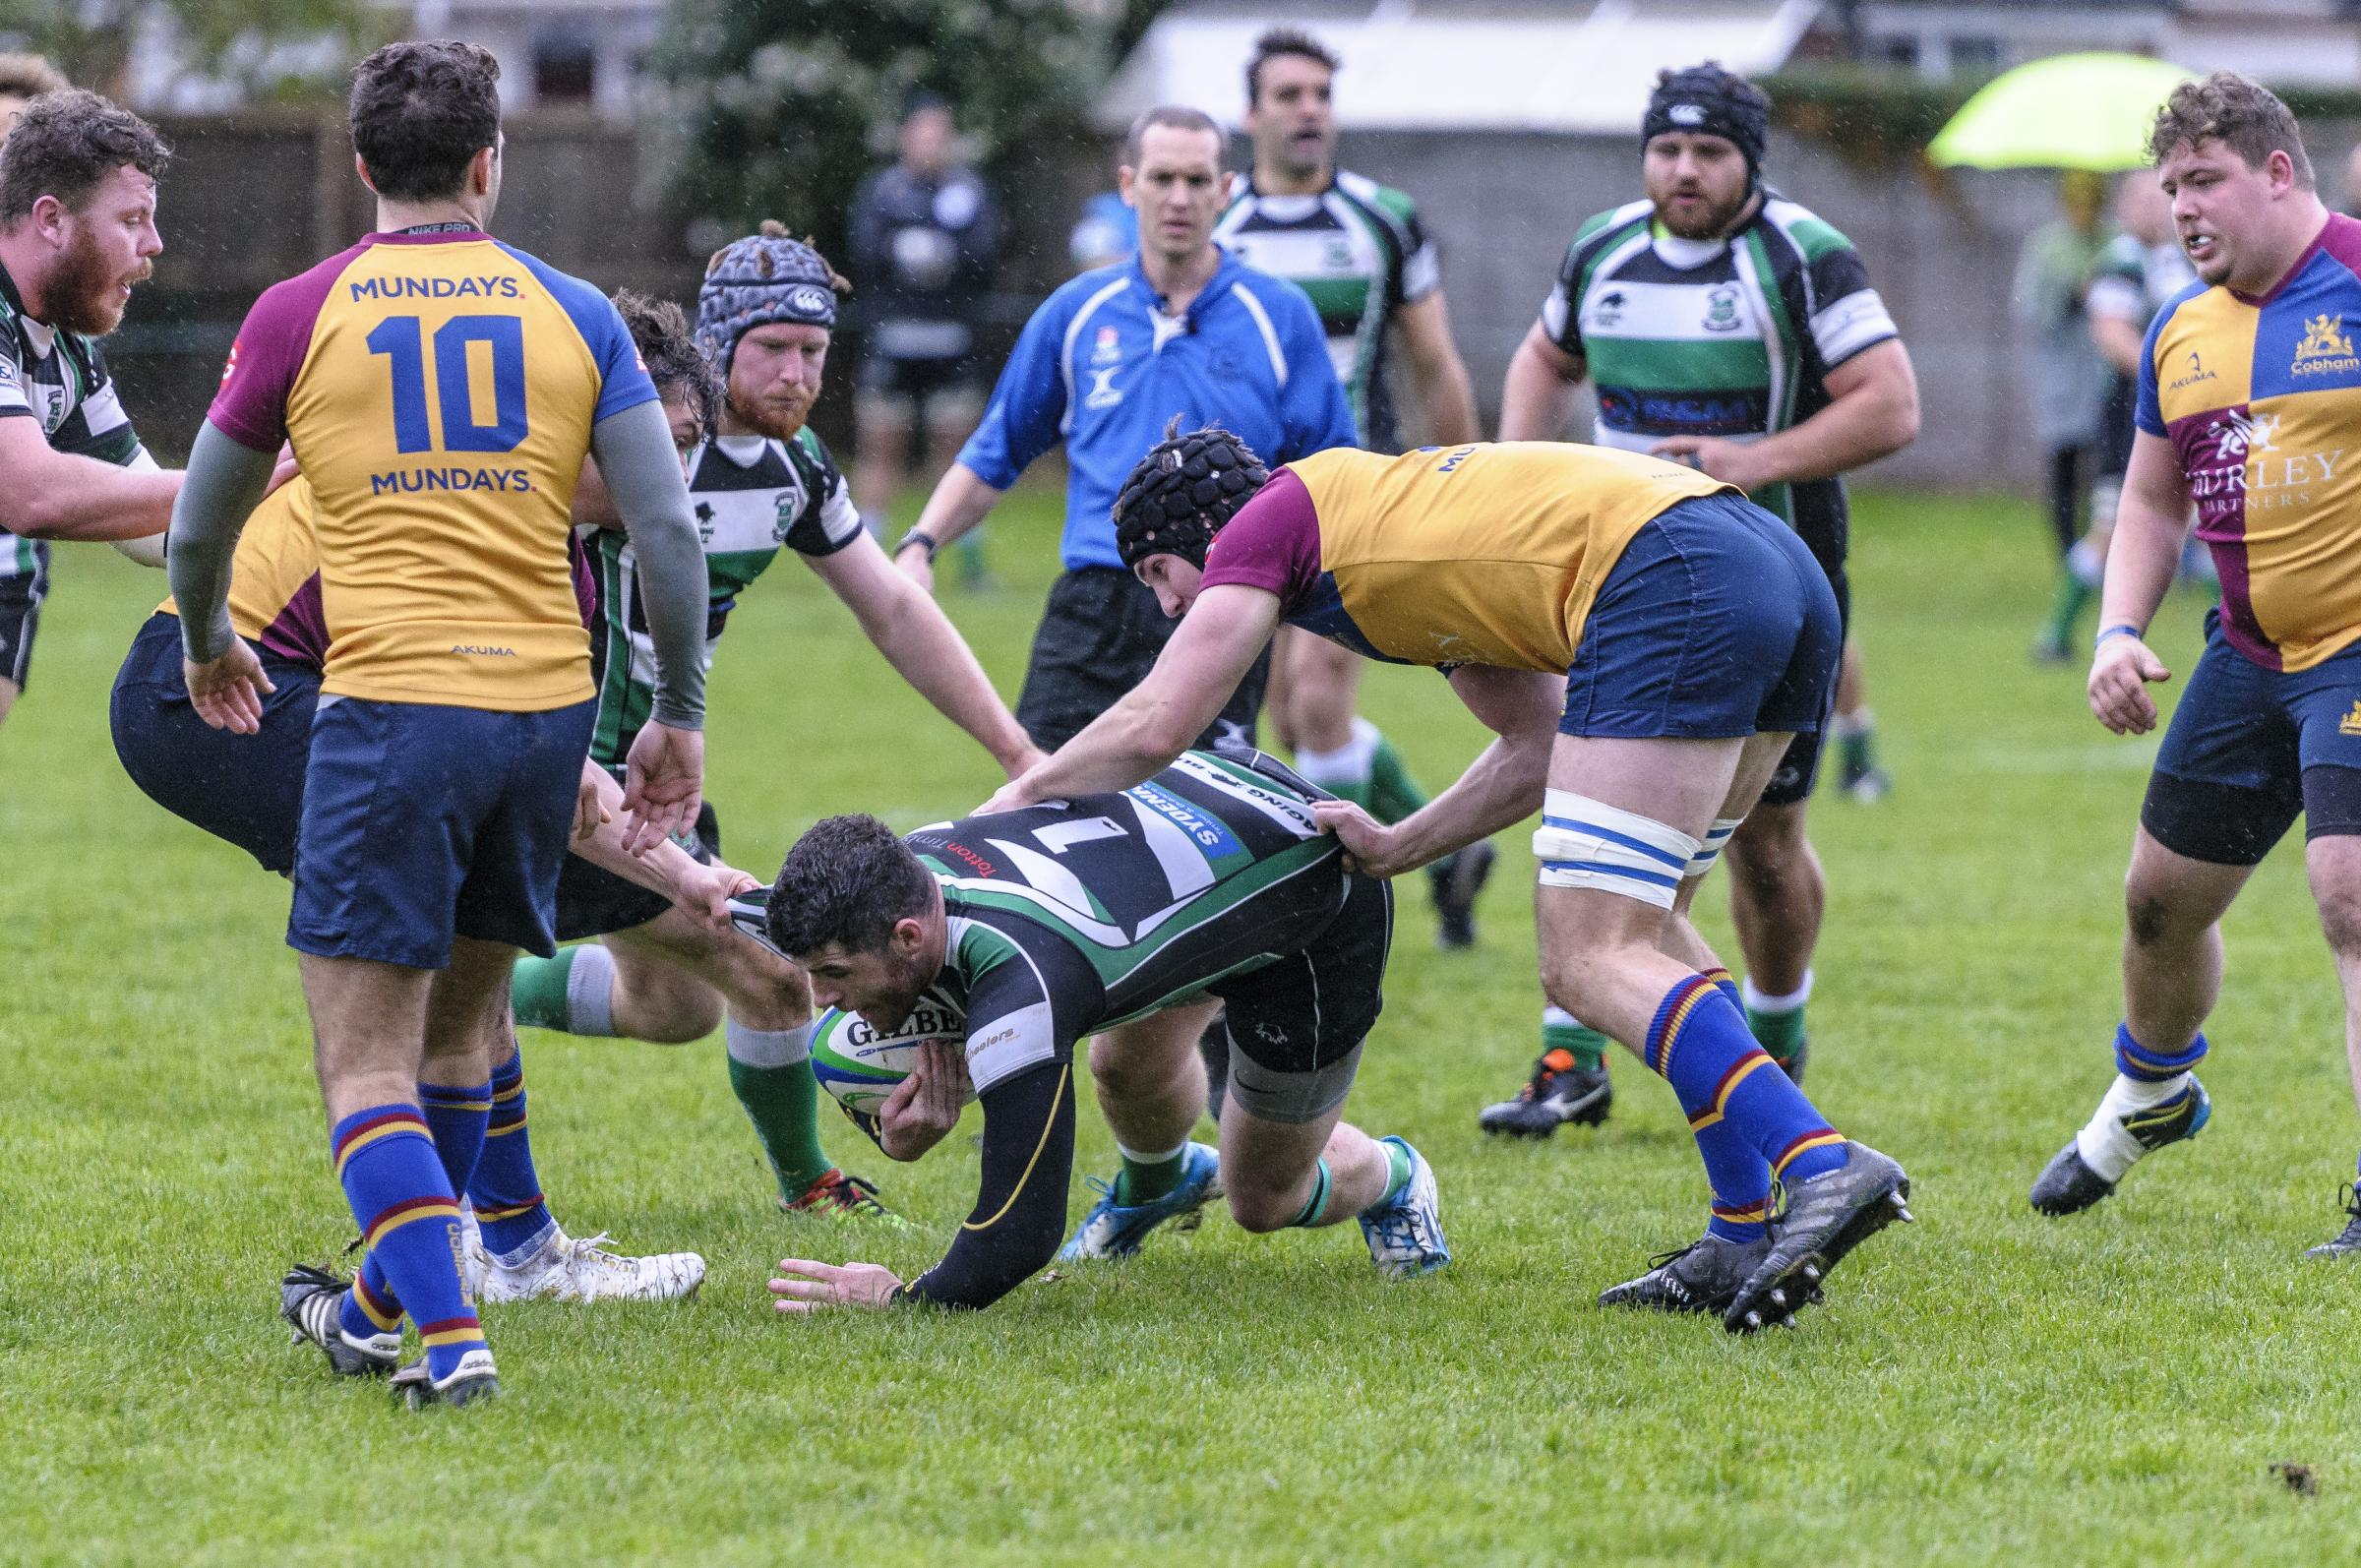 Rugby Tottonians v Cobham, Totton's Eoin Baxter.